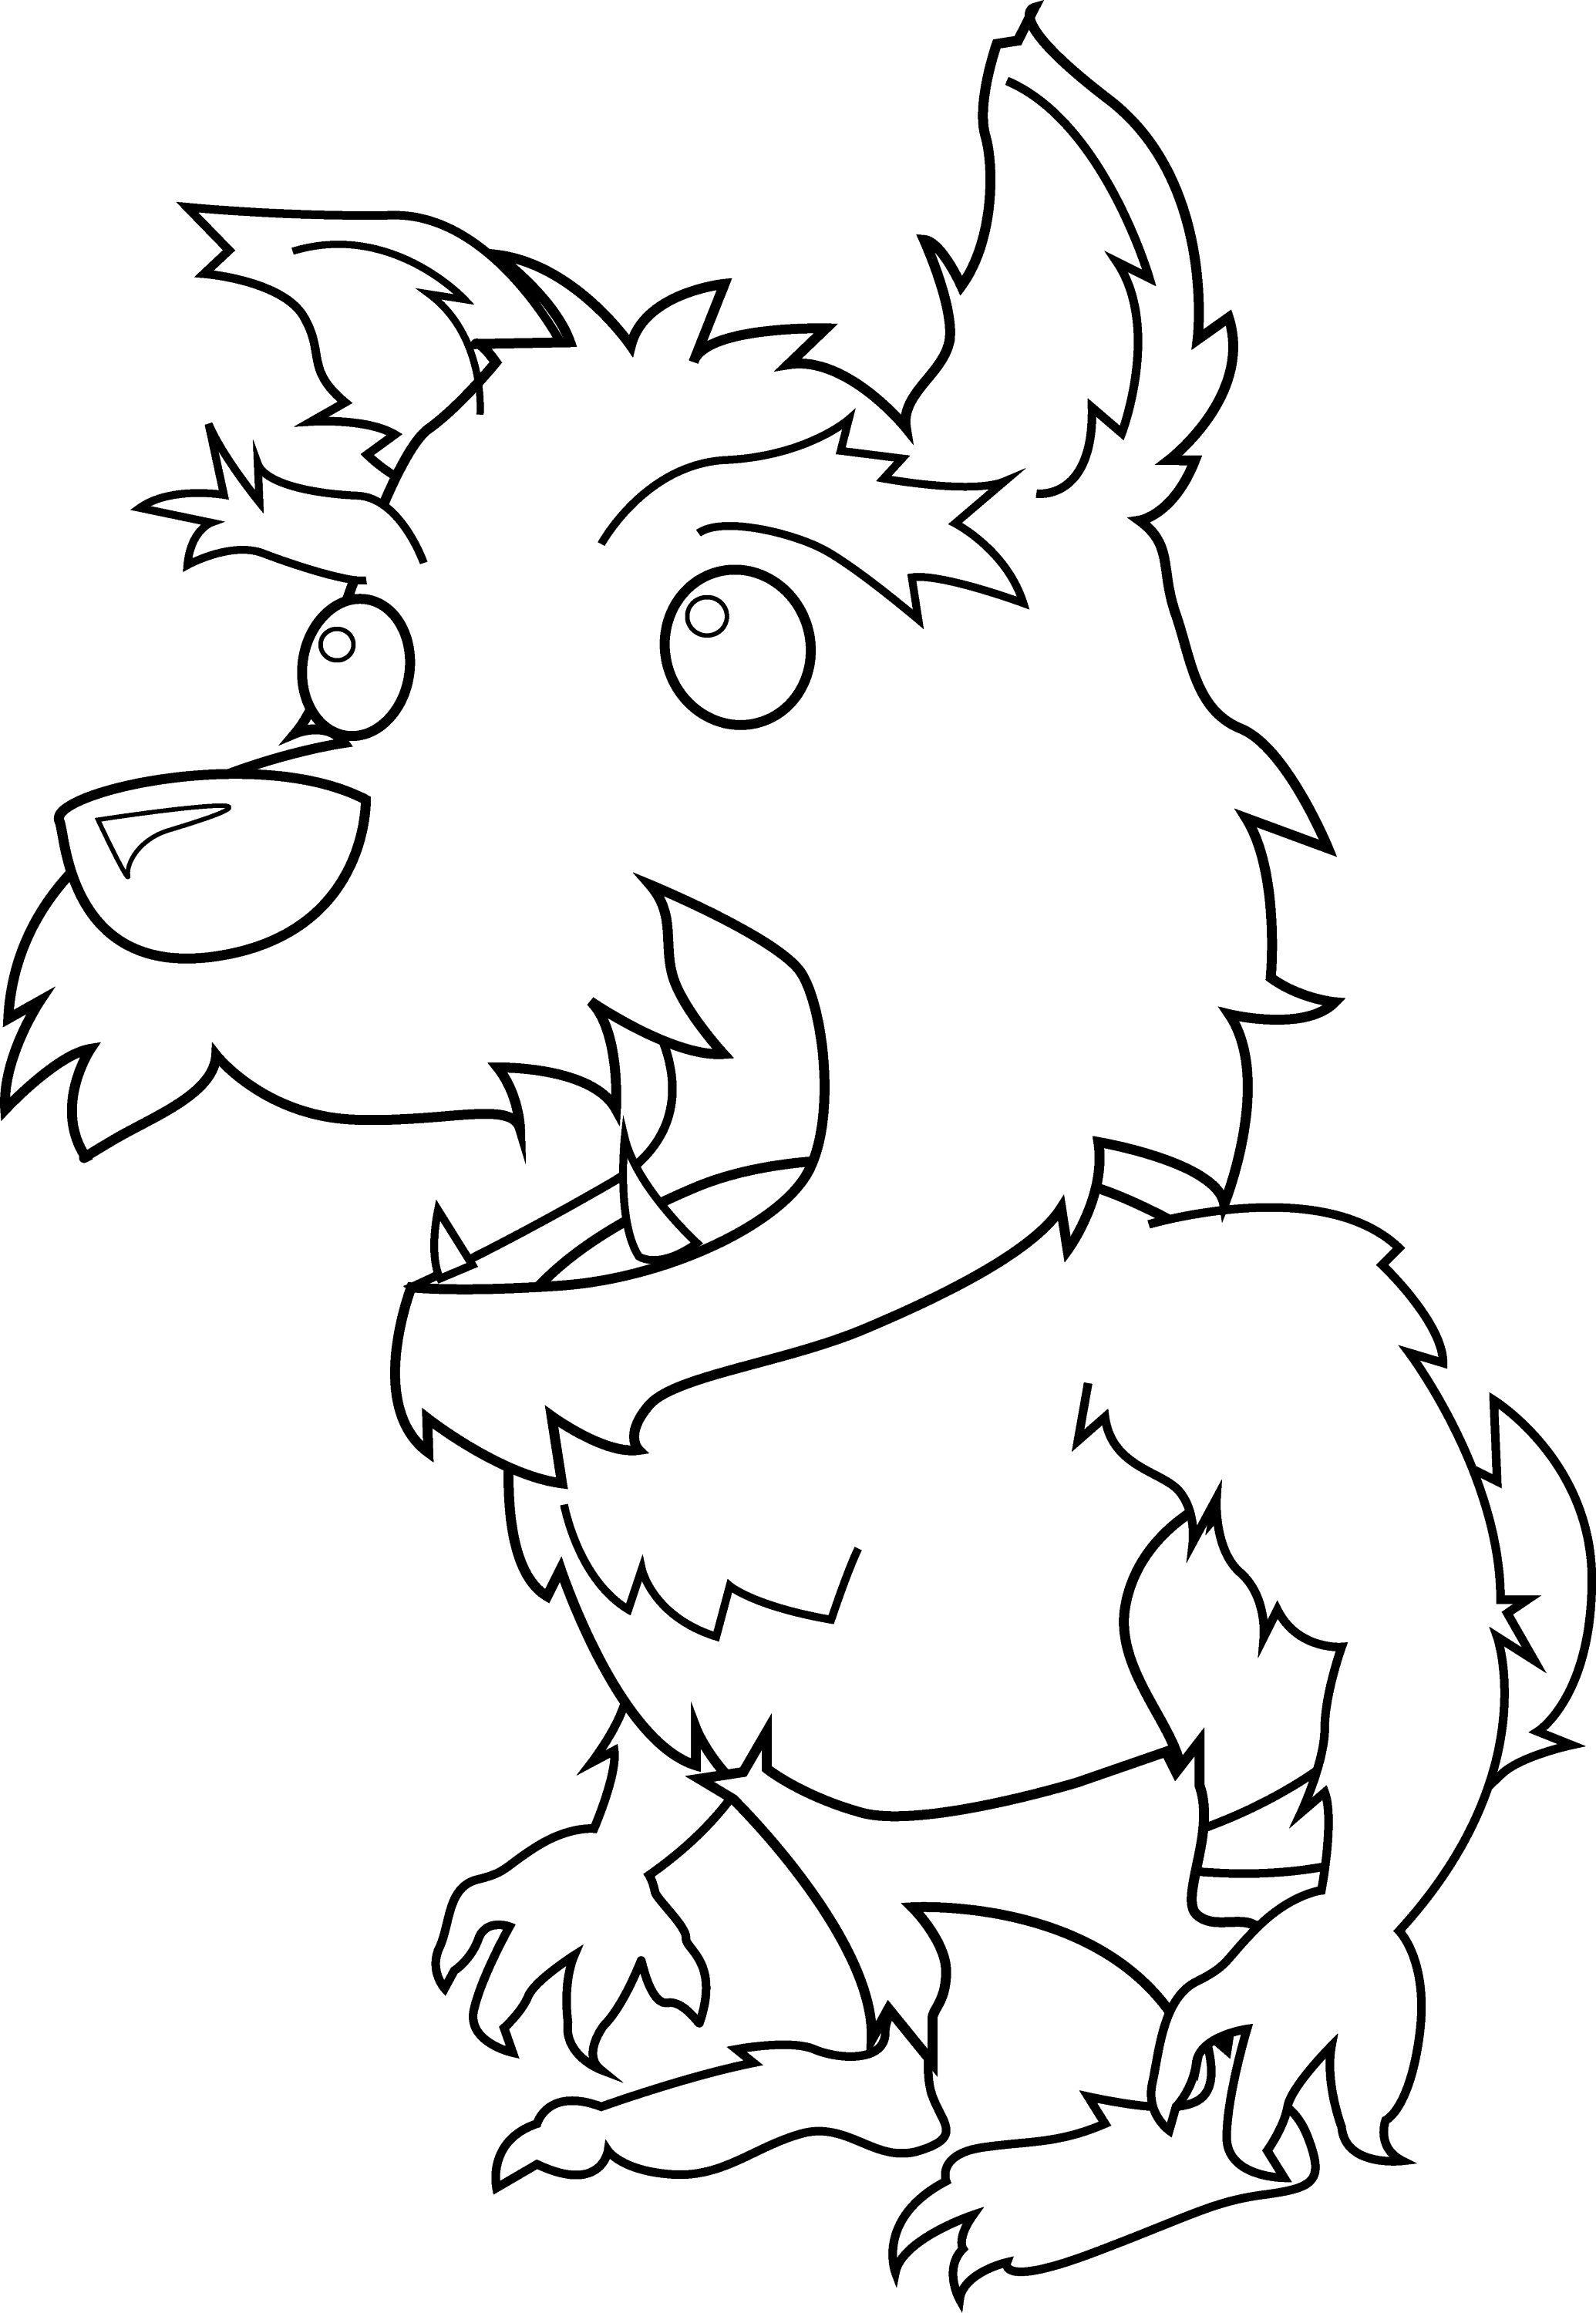 Scary Little Werewolf Coloring Page - Free Clip Art